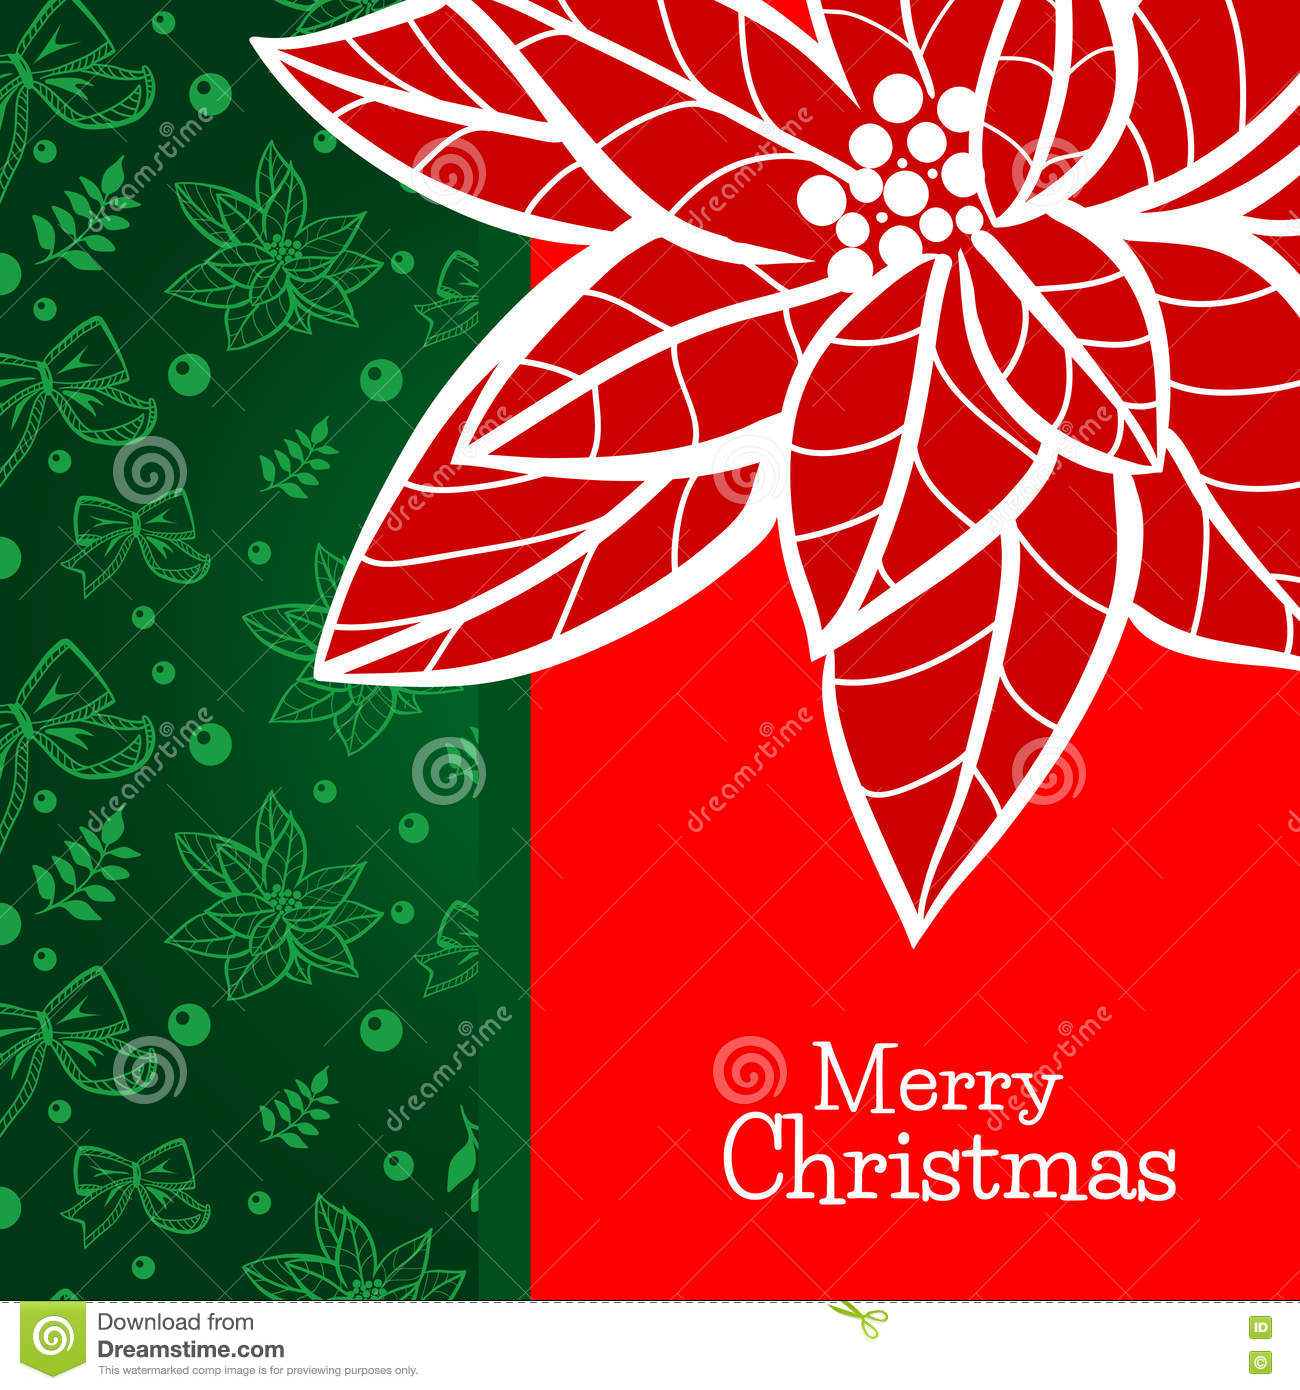 christmas and new year greeting card template with hand drawn poinsettia flower